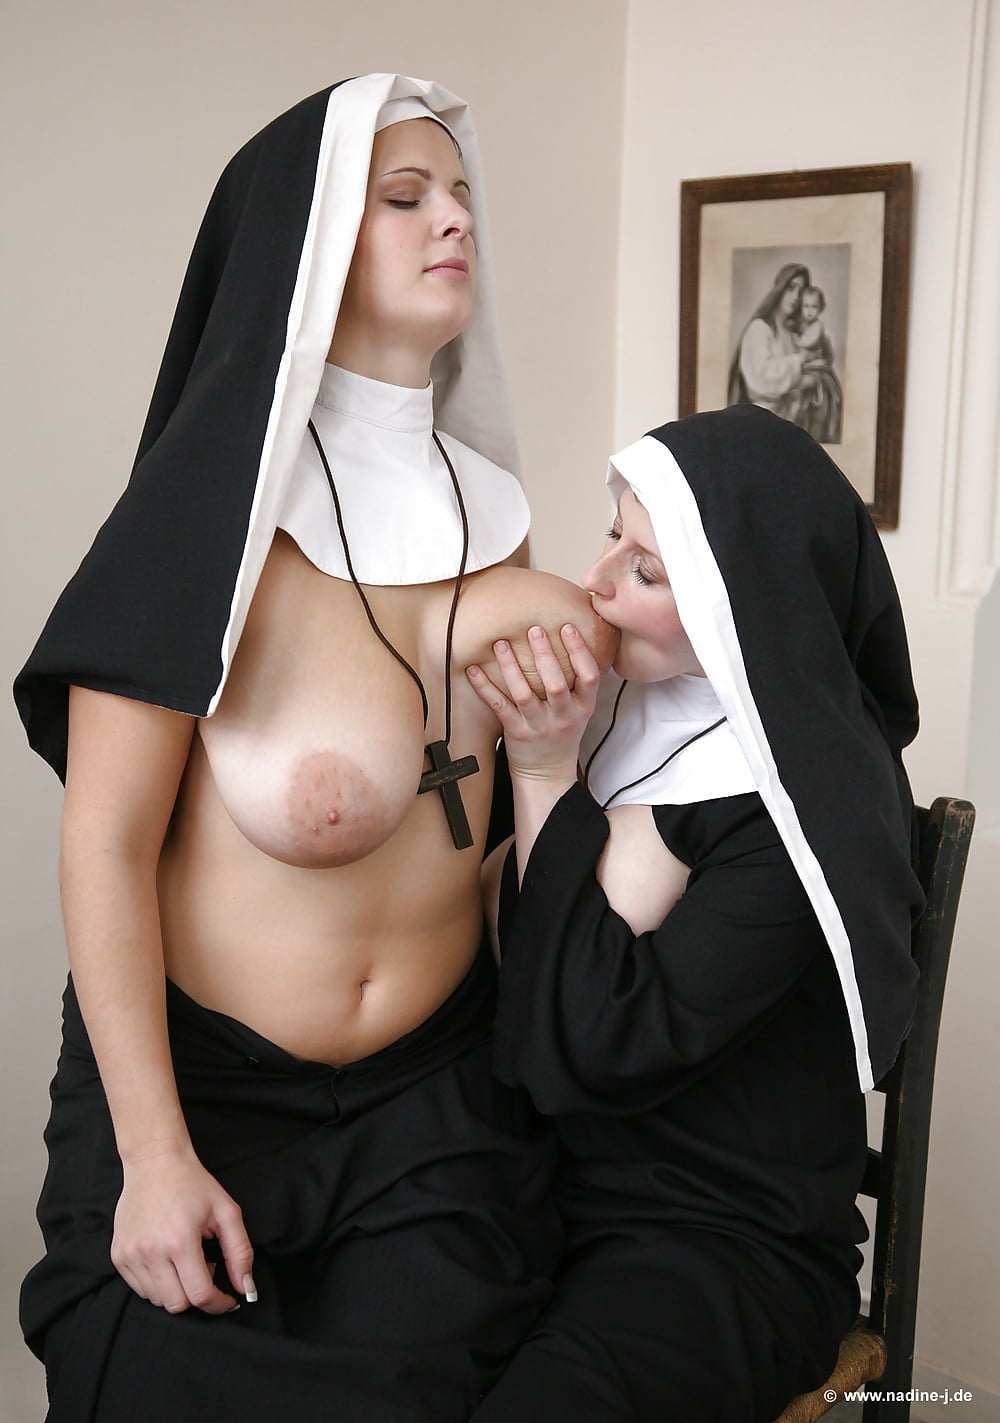 naked-pics-of-young-nuns